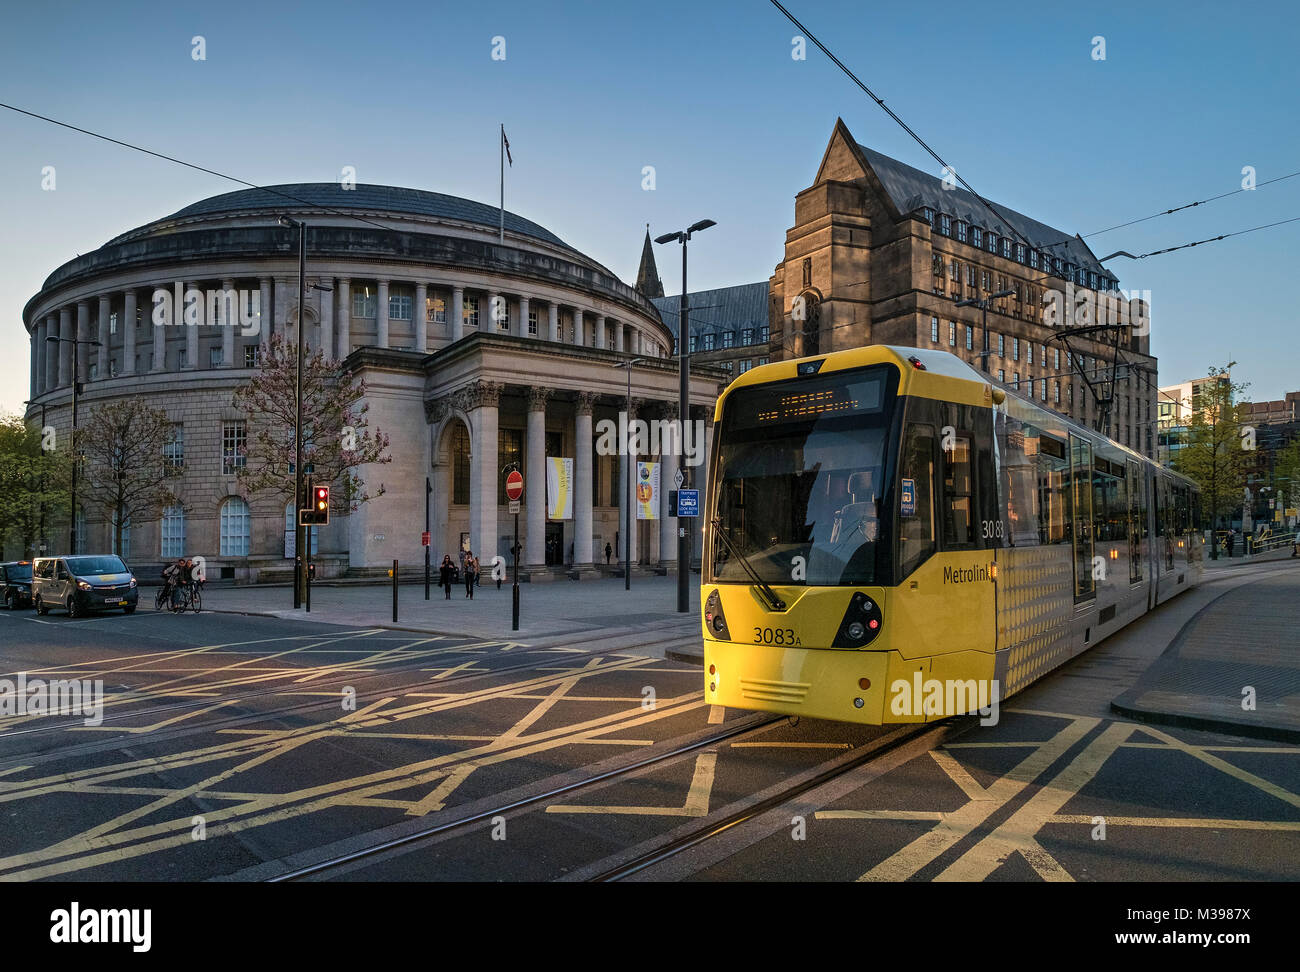 Metrolink Tram passing The Central Library, St Peters Square, Manchester, Greater Manchester, England, UK - Stock Image